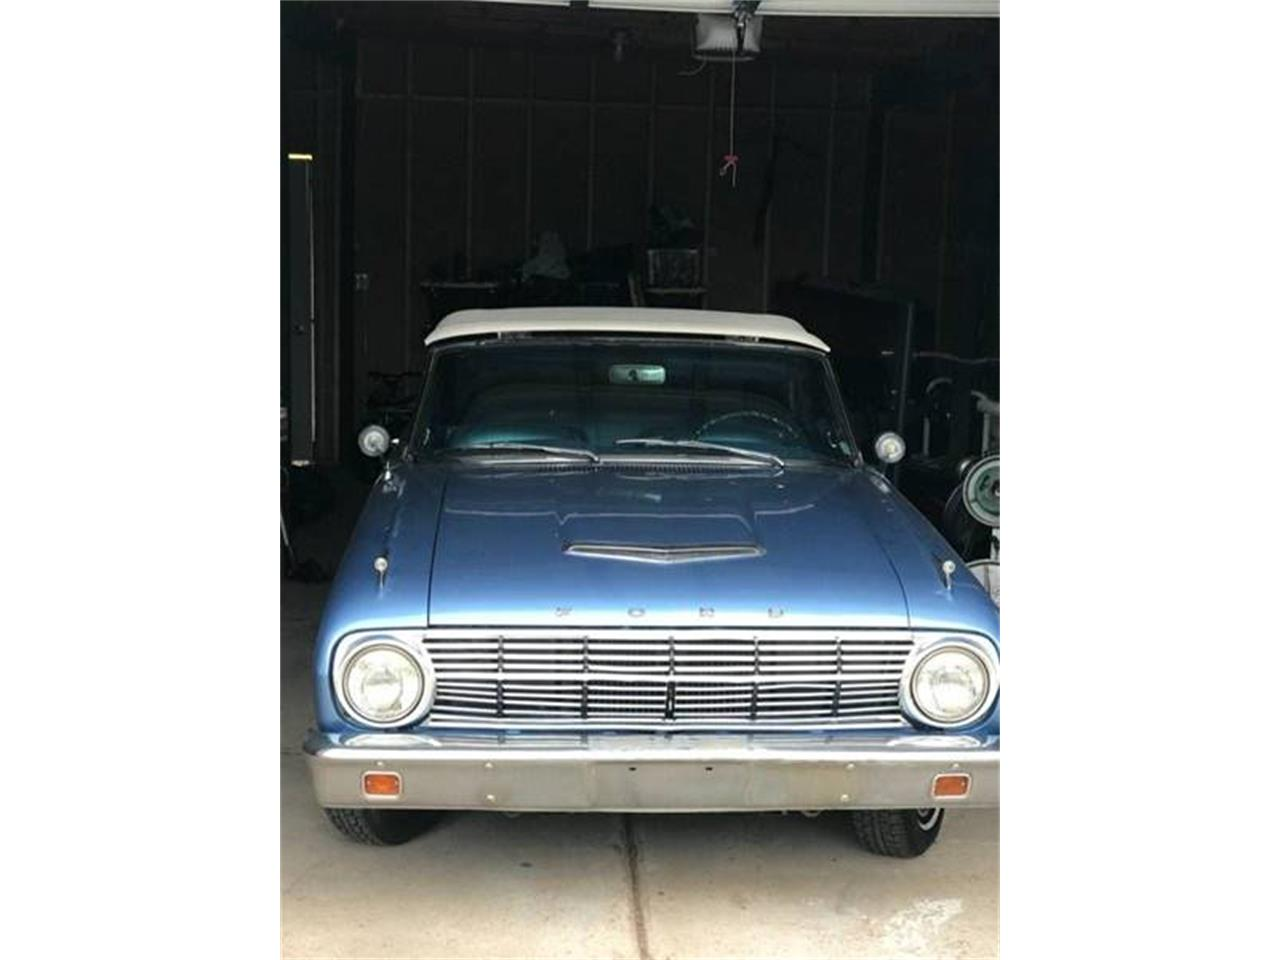 For Sale: 1963 Ford Falcon in Long Island, New York